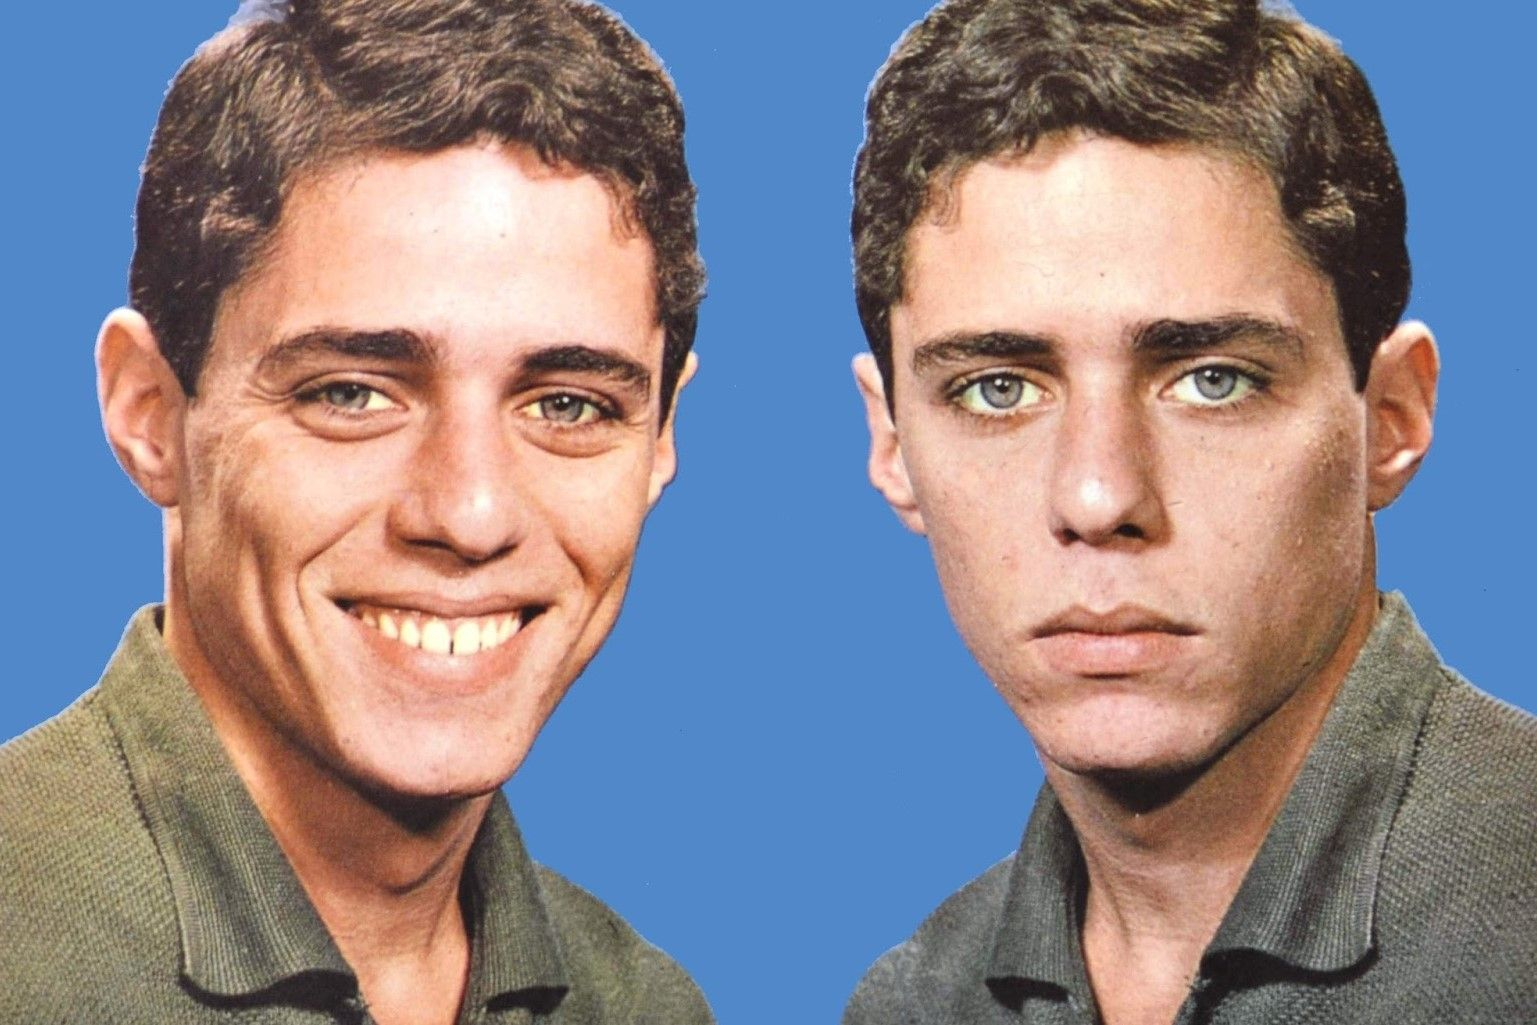 Chico Buarque demonstrating the effects of this show